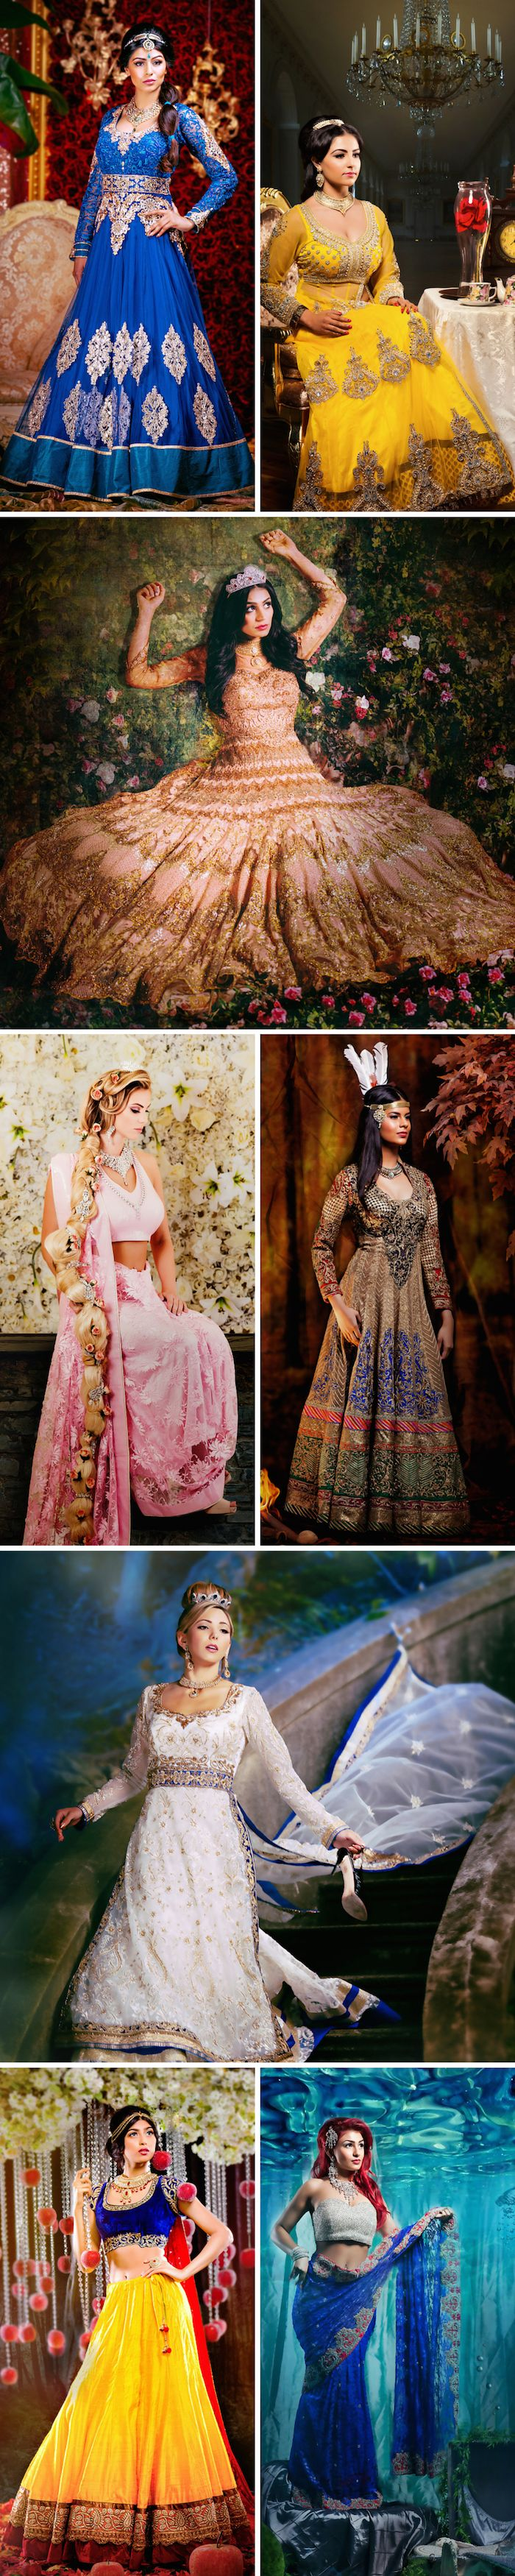 Disney Princesses Indian style   Photography by AMRIT